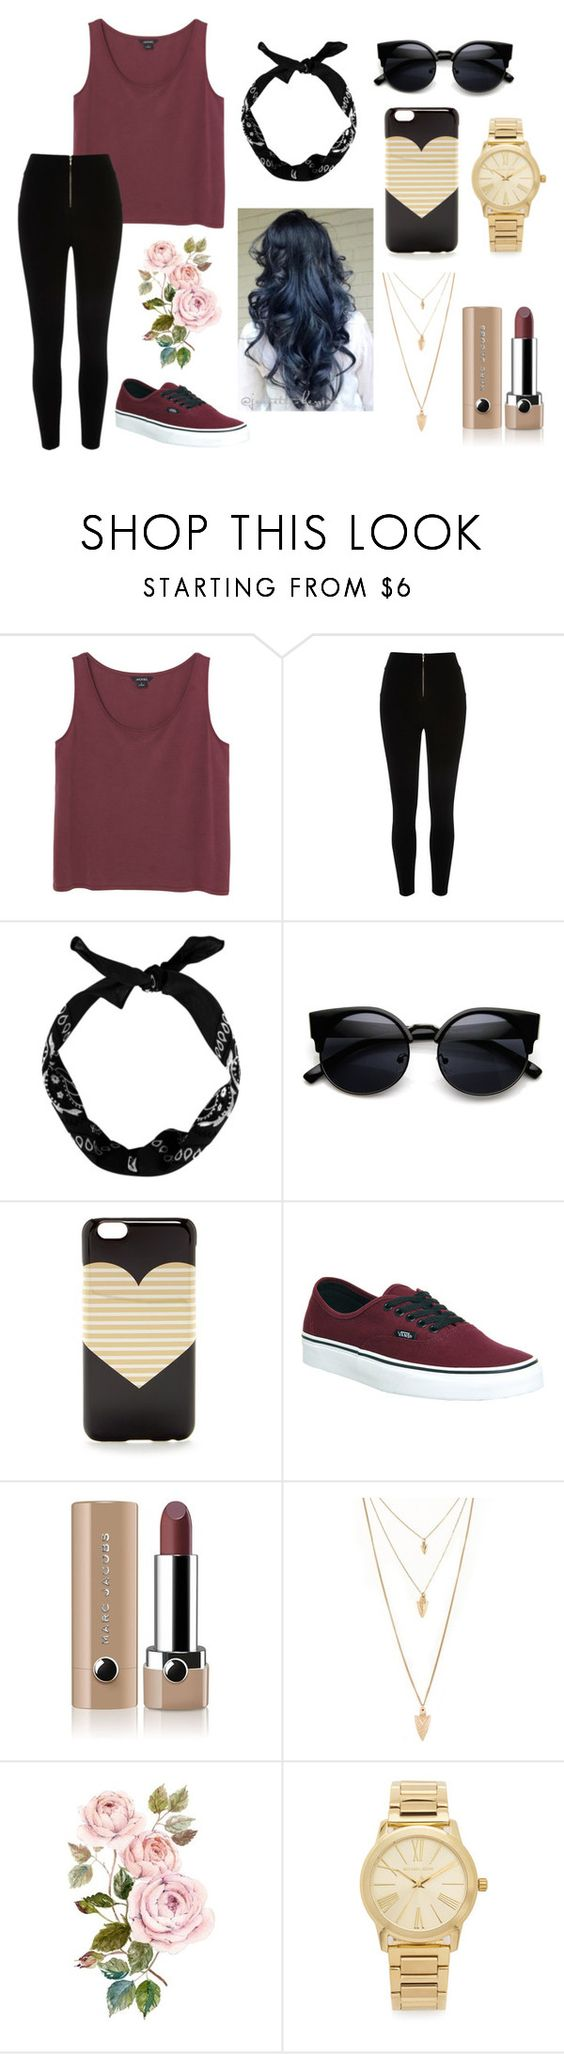 """different but stylish"" by sighlxly ❤ liked on Polyvore featuring beauty, Monki, J.Crew, Vans, Marc Jacobs, Forever 21 and Michael Kors"